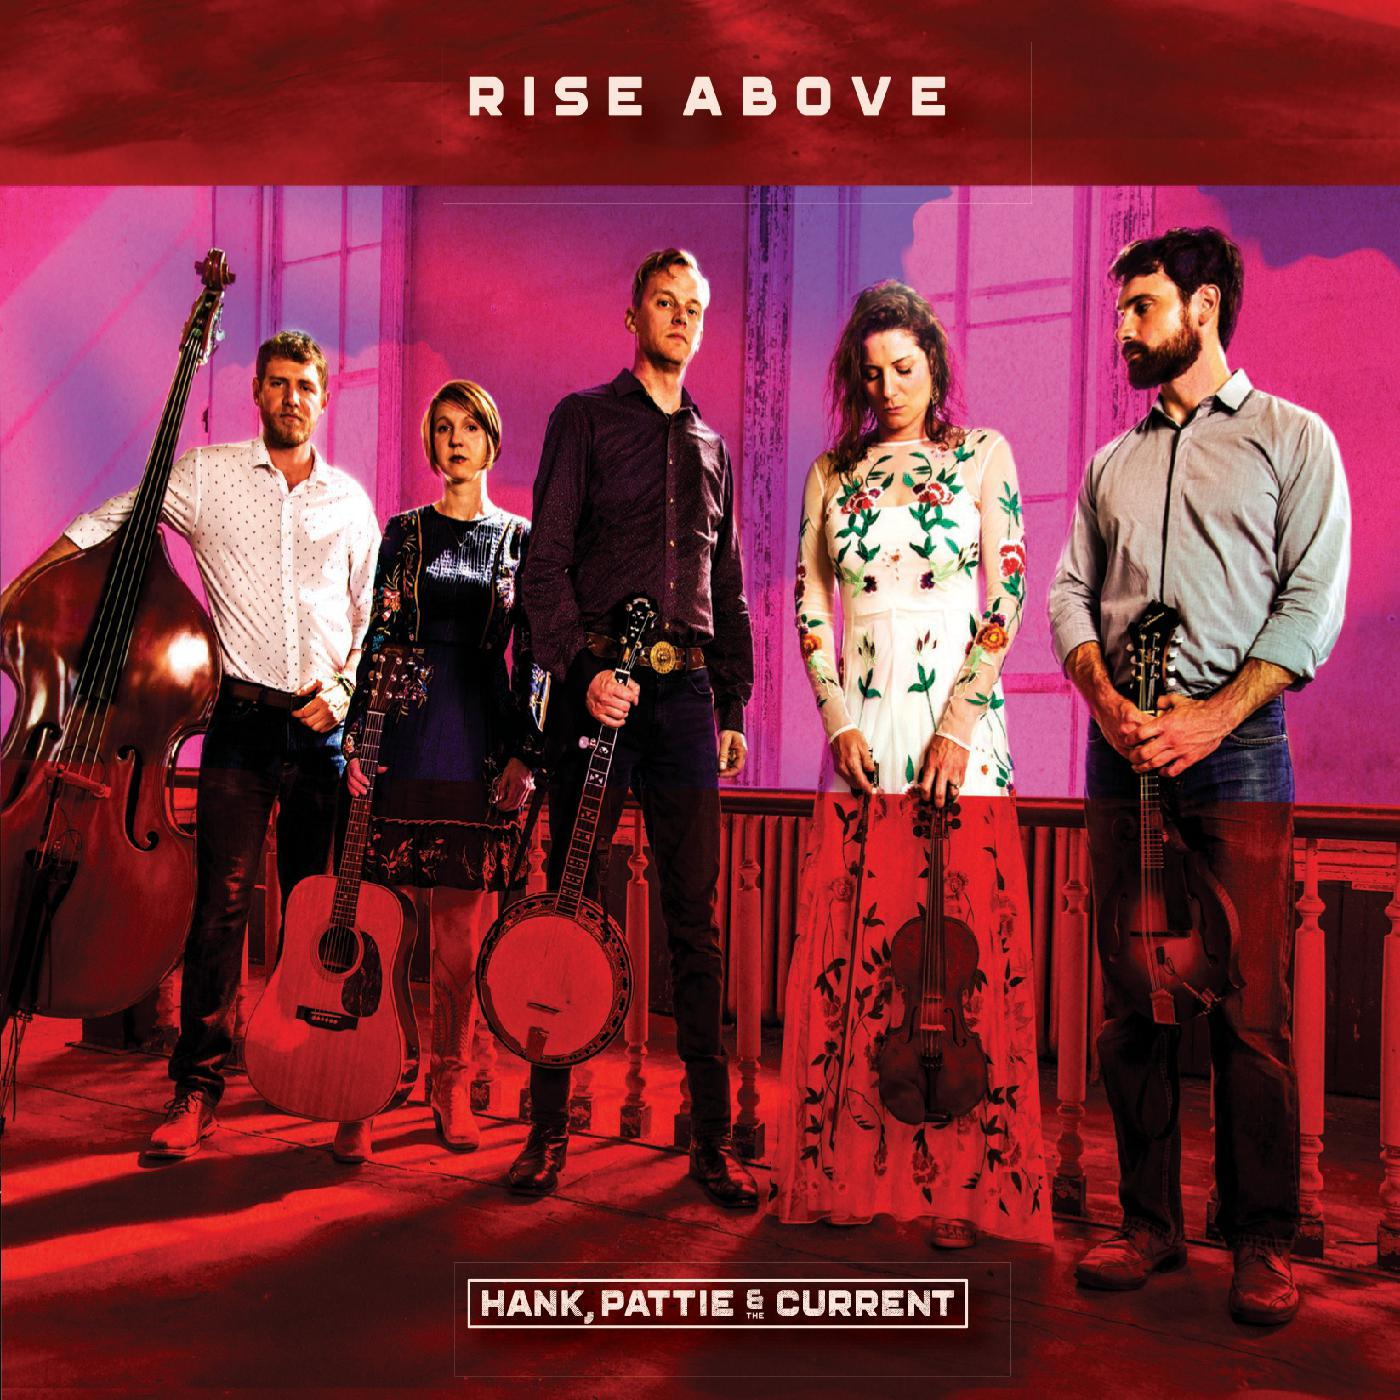 Cover image for Hank Pattie Rise Above RBST020.jpg